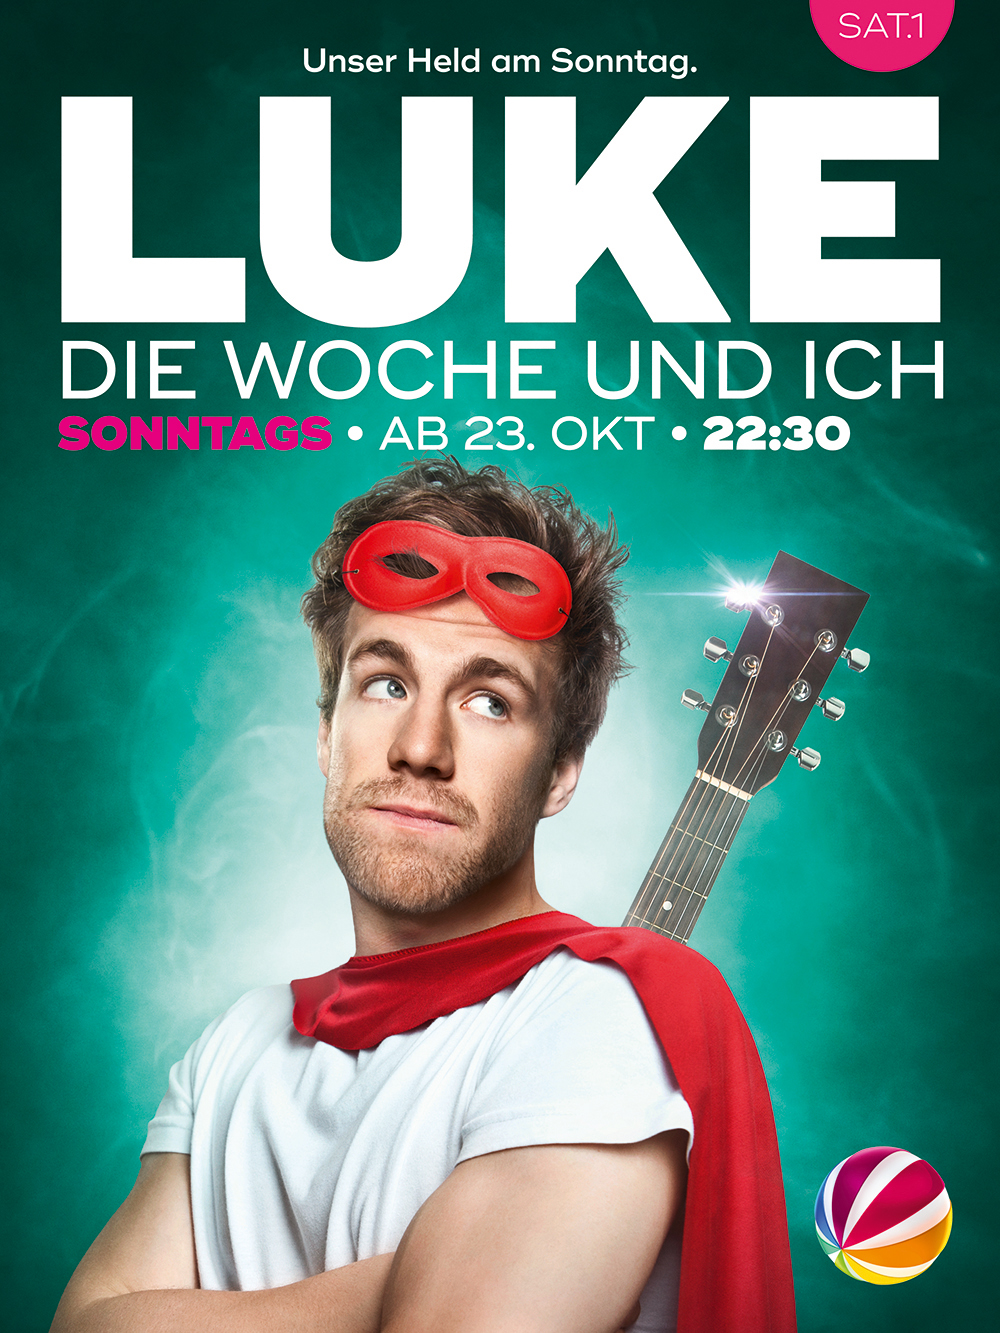 SAT1_Luke_Frauenversion_Master_210x280_39L.indd